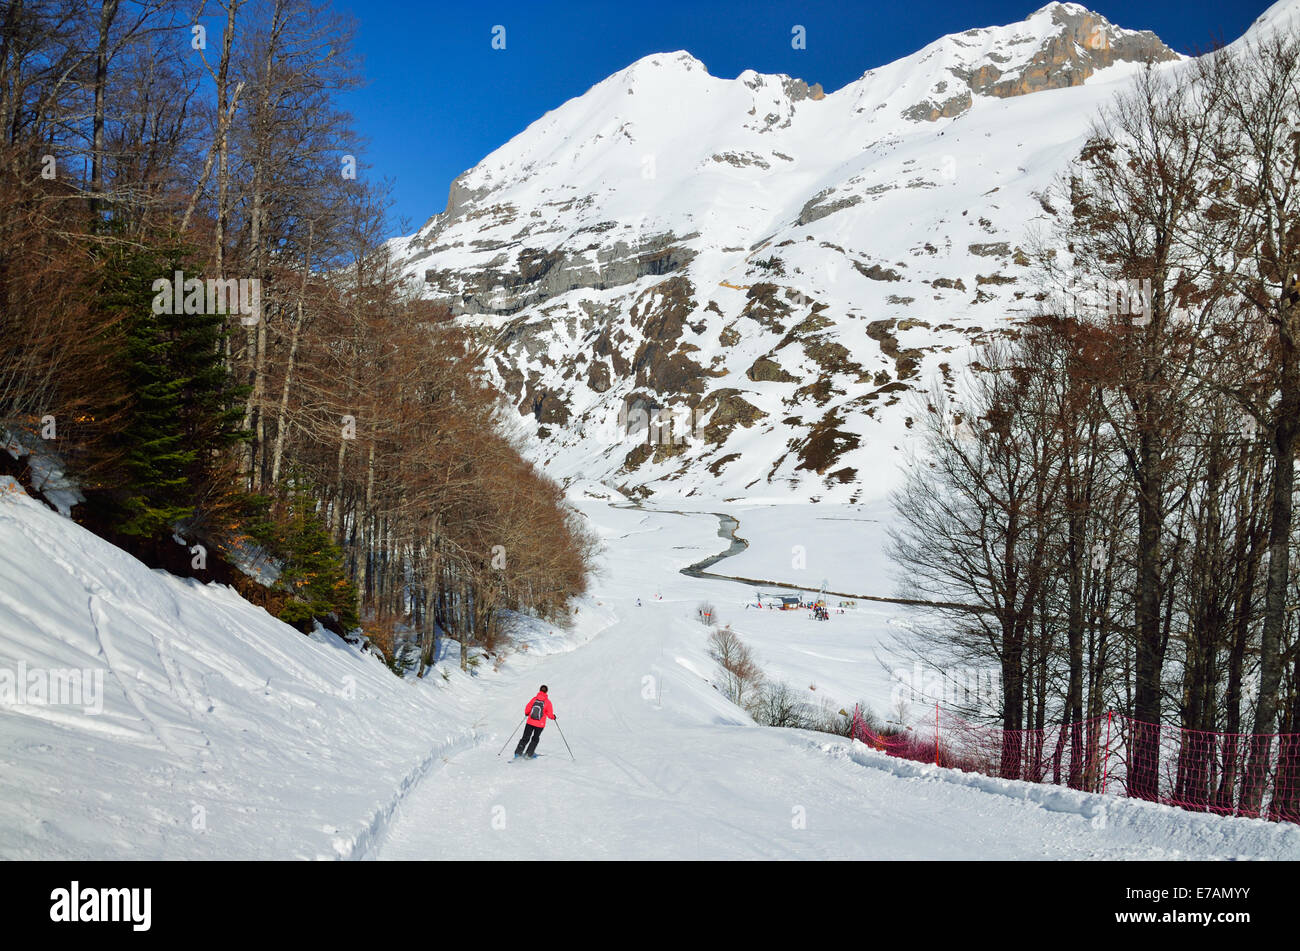 Vacations in the winter mountains - Stock Image